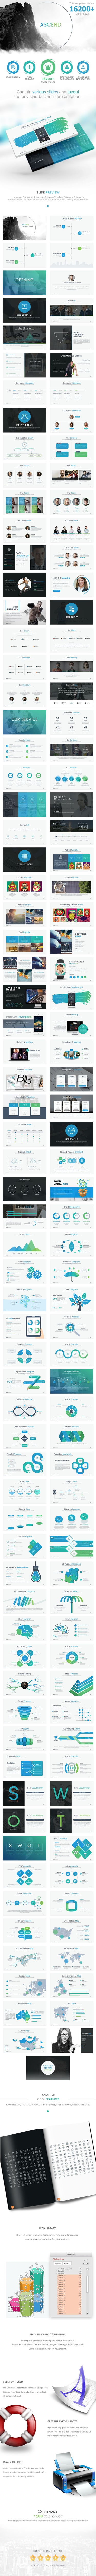 ASCEND - Presentation Template for Powerpoint on Behance